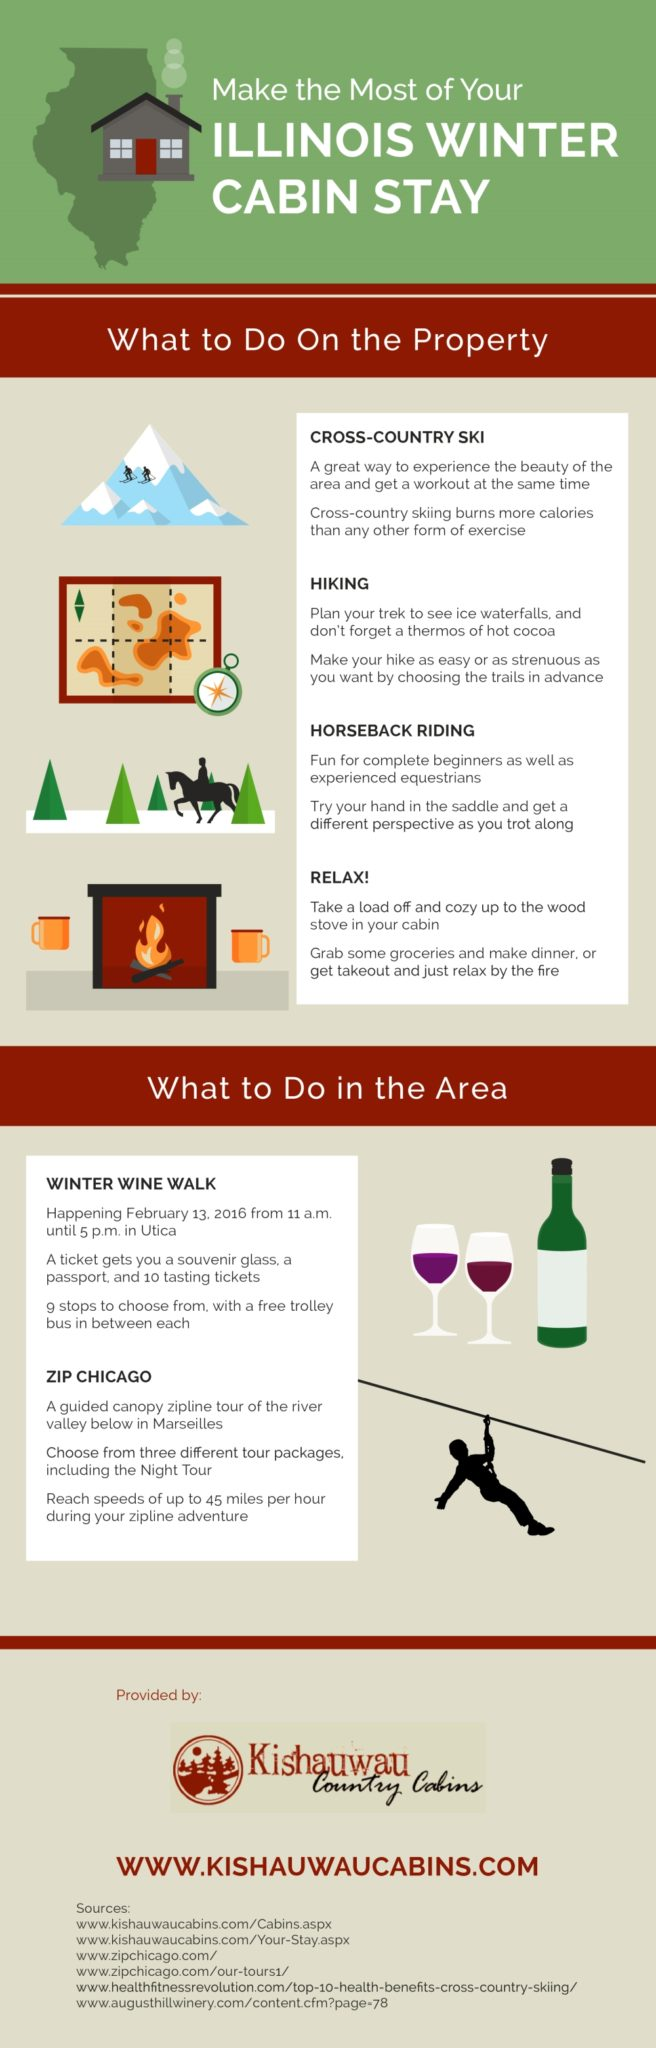 Winter Cabin Stay Infographic